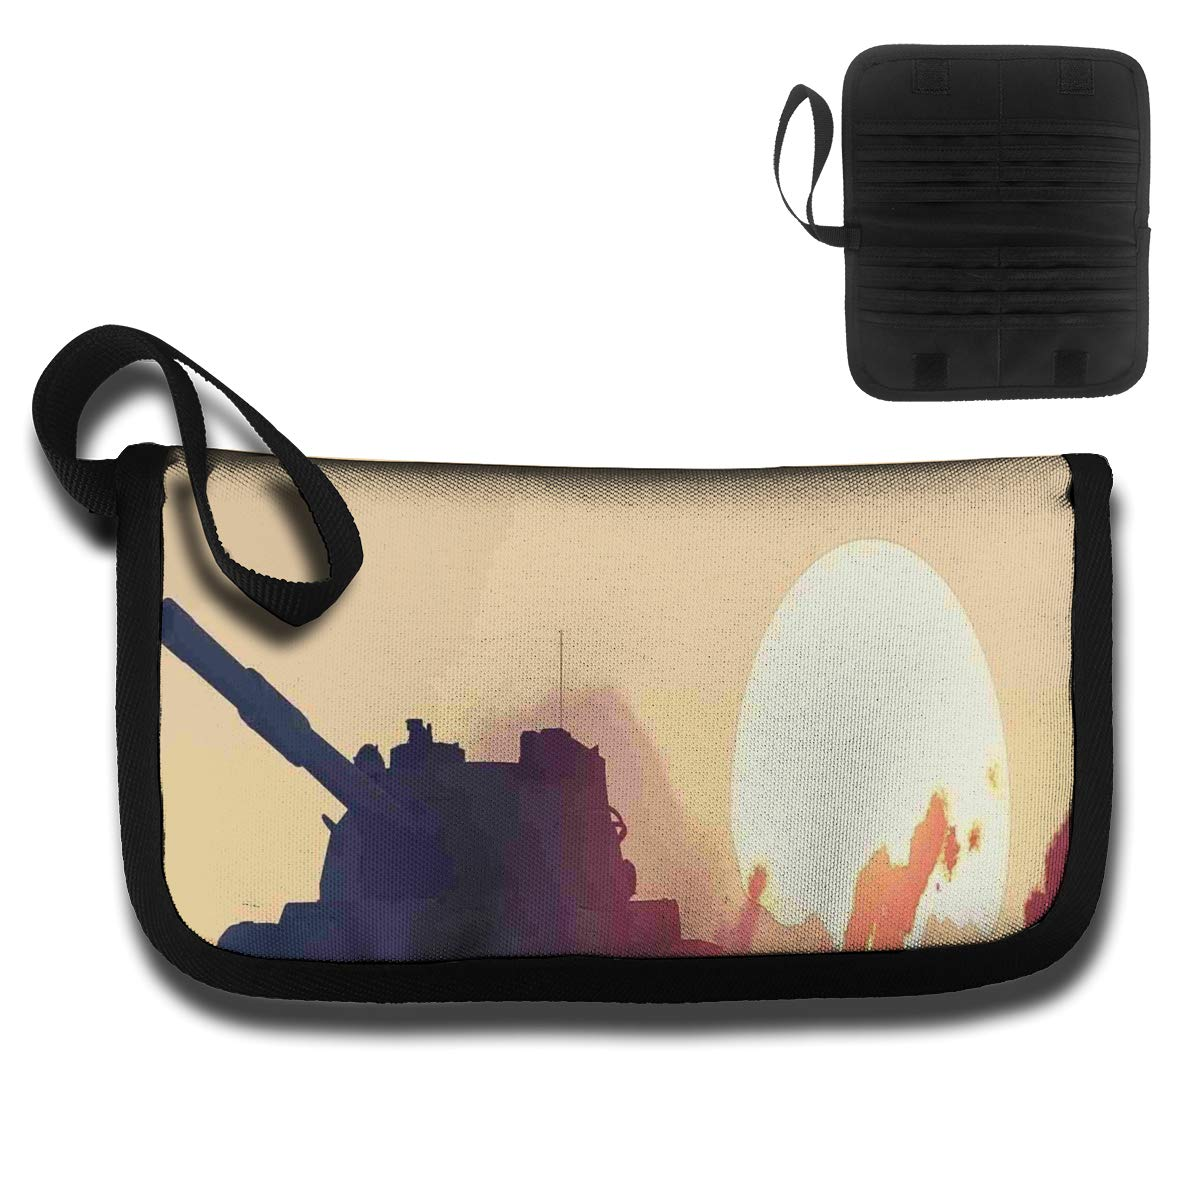 Amazon.com: Unisex Tank and Ruined Skyscrapers Multi-Function Wallet Credit Card Case Holder: Home & Kitchen